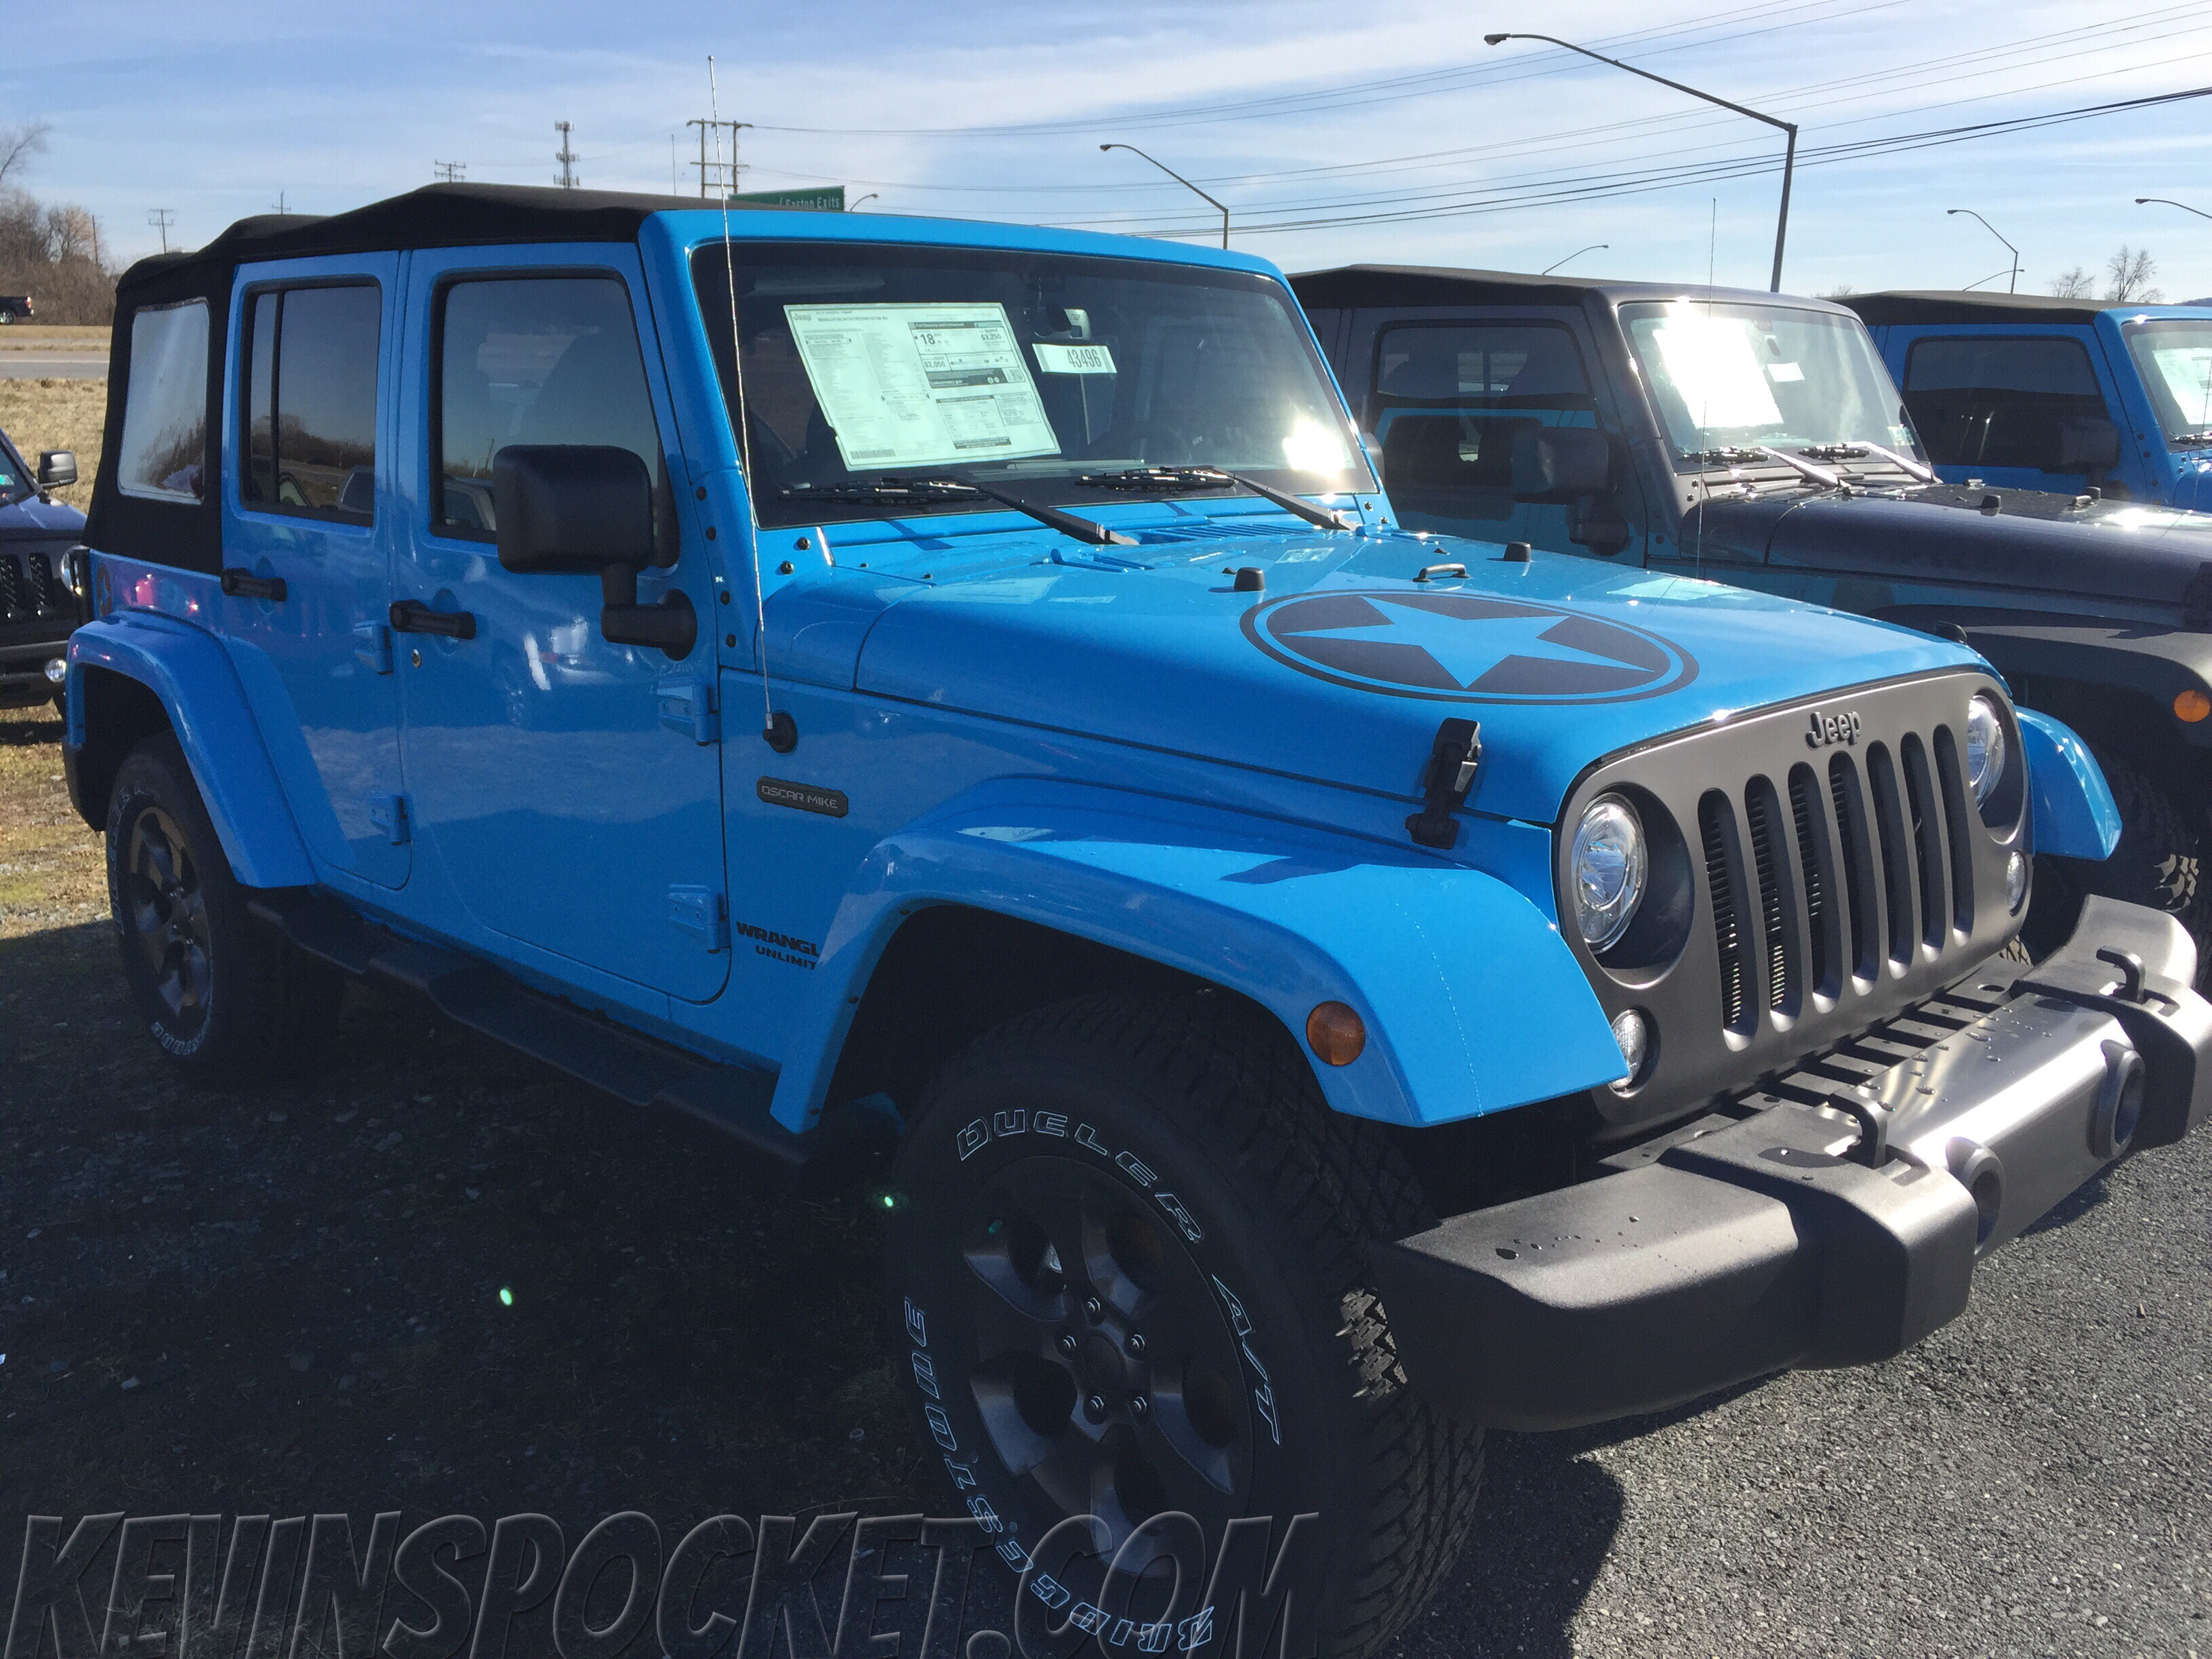 Jeep Wrangler For Sale Nj >> Chief Blue Wranglers Spotted! – kevinspocket